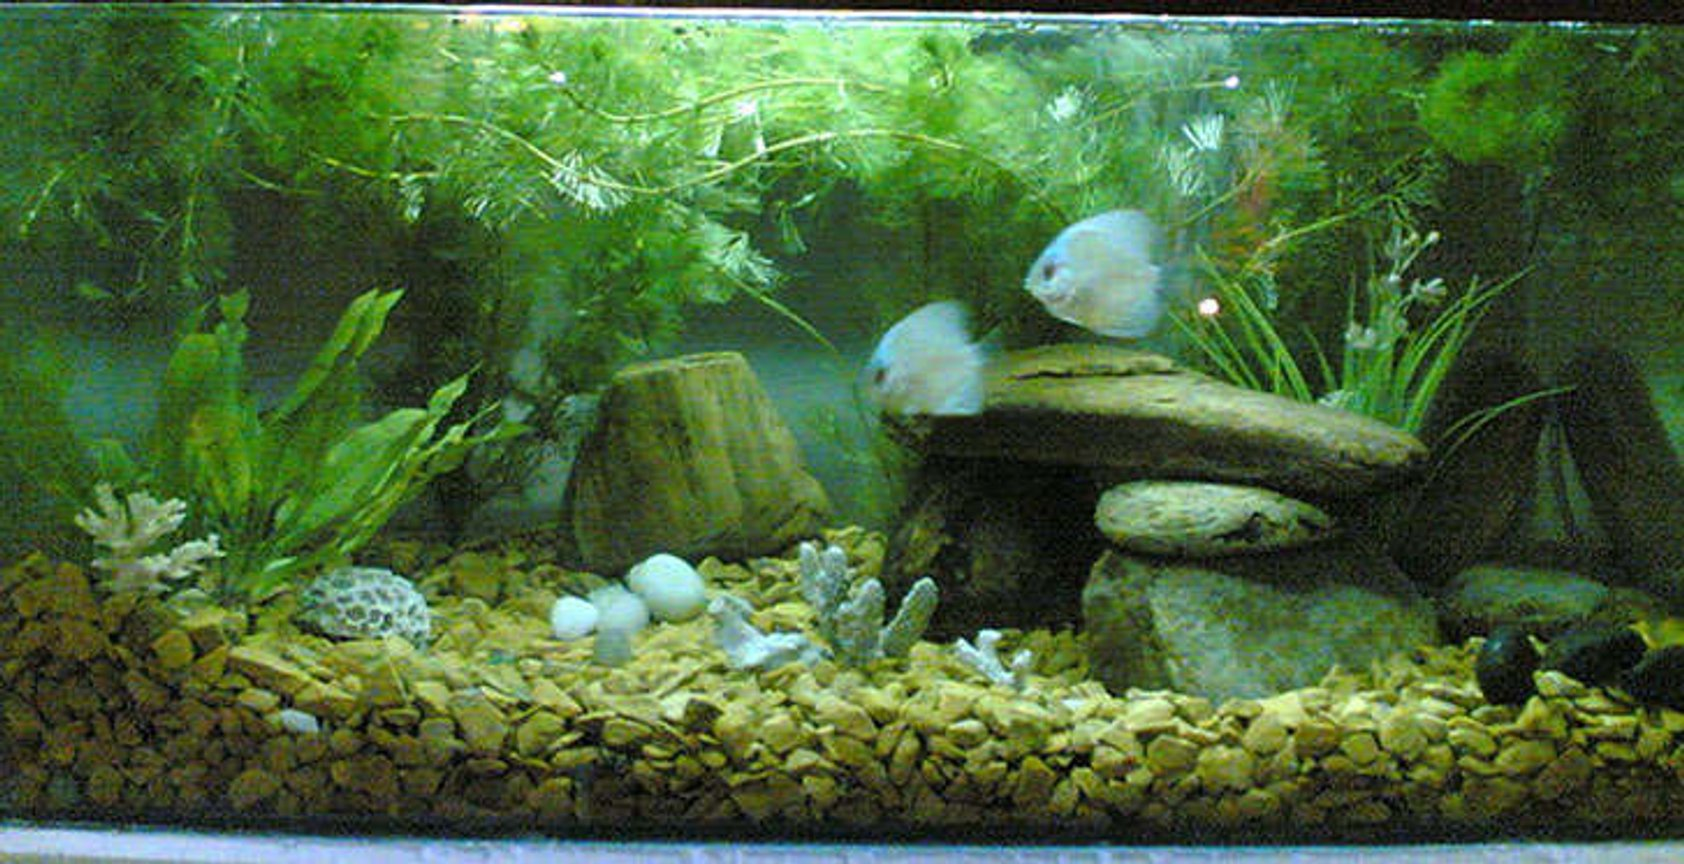 "15 gallons planted tank (mostly live plants and fish) - belive in natural. everything in my tank is real. Though Fish do not like artifical so stones, plants, and gravel are all real ones. Its a 2 x 1 x 1 tank (15g). Crystal clear Glass and water. Well I have two discuss Fish just 2"". They are young."